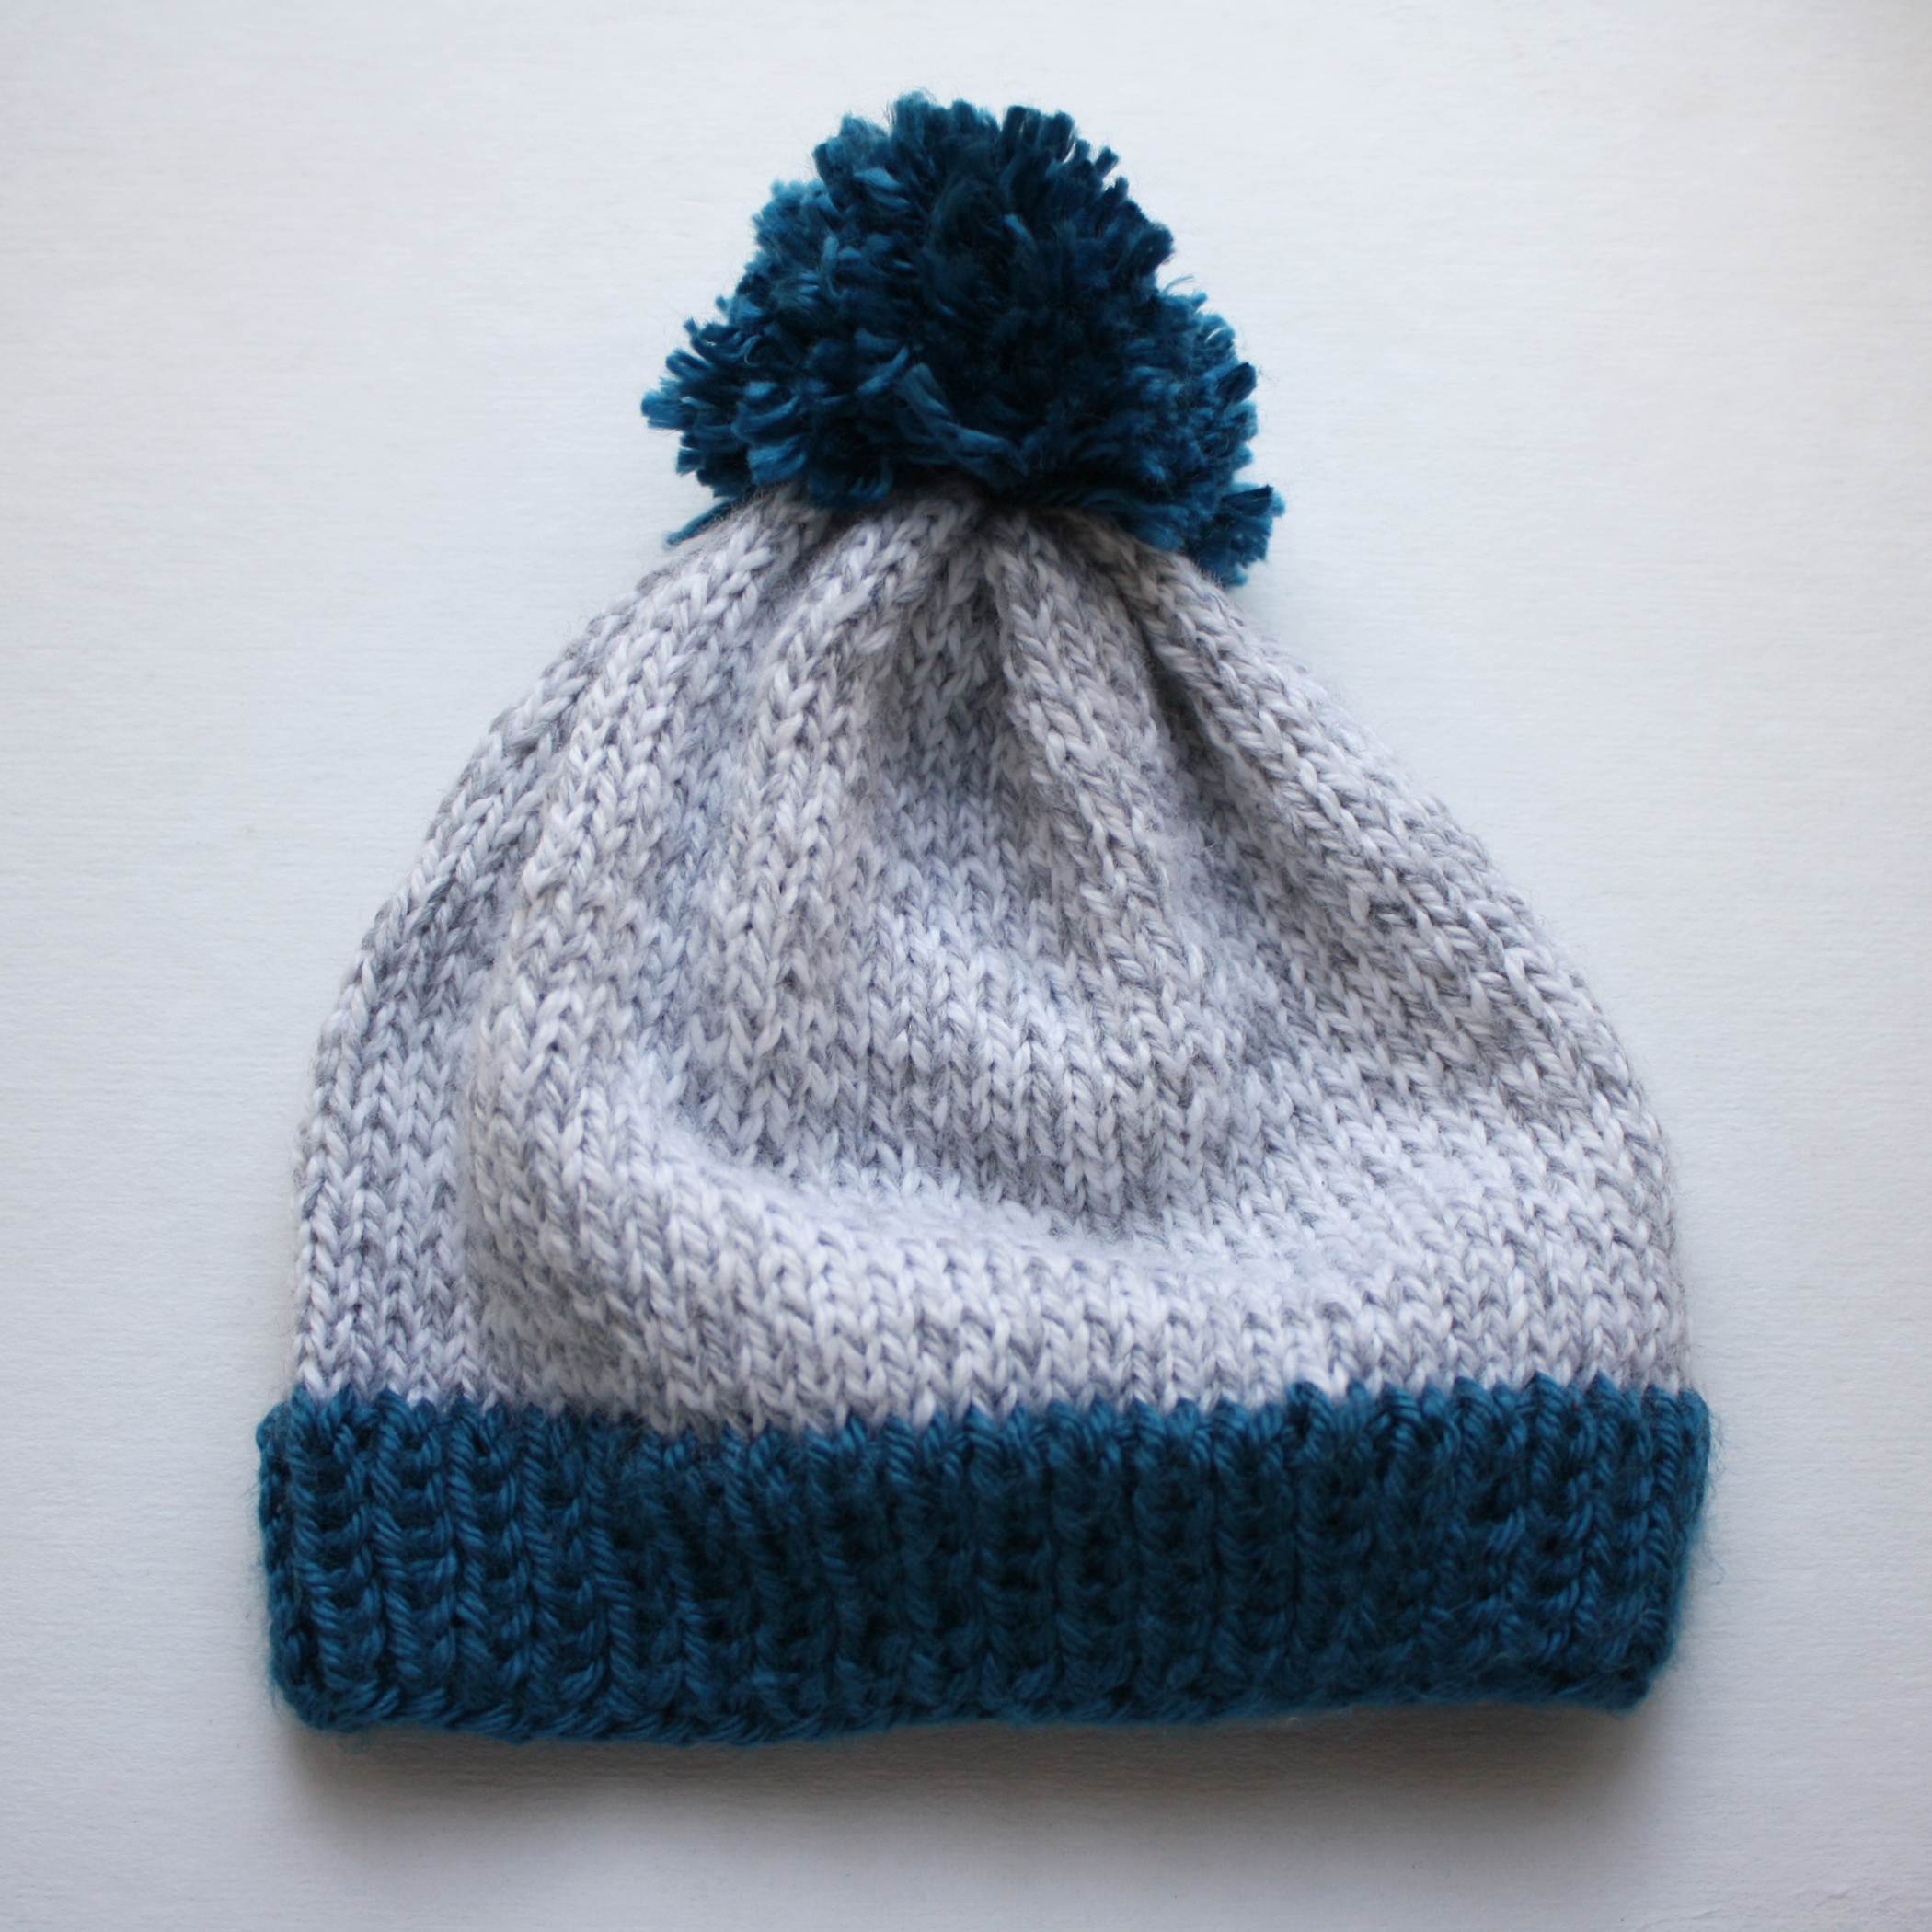 michael ann made.  Big Pom Baby Beanie - Now With Free PDF Pattern! 4a2bee91e6f